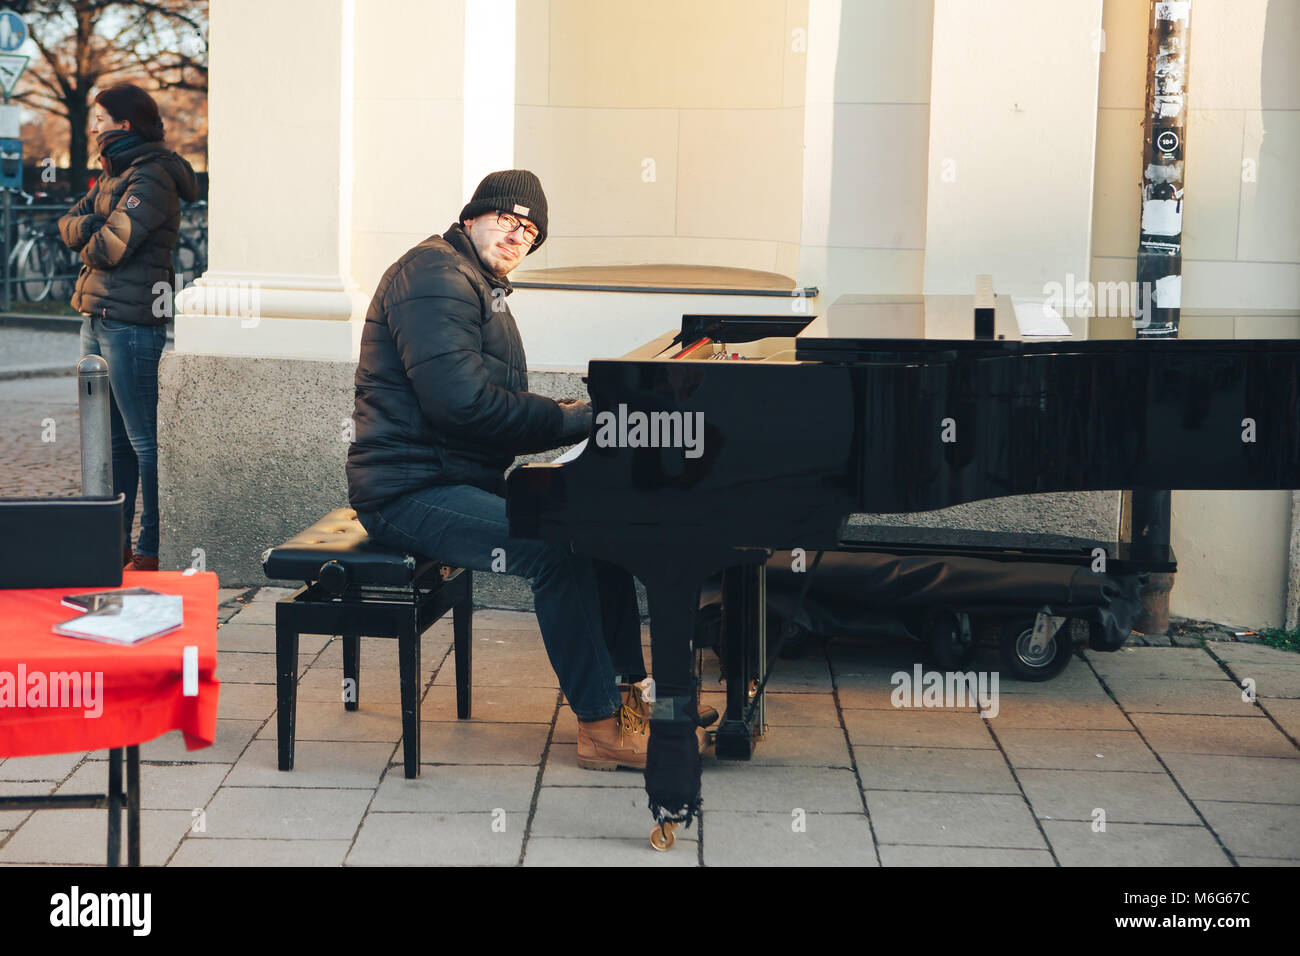 Munich, Germany, December 29, 2016: a street musician playing the piano. Entertainment of tourists in Europe. Street - Stock Image